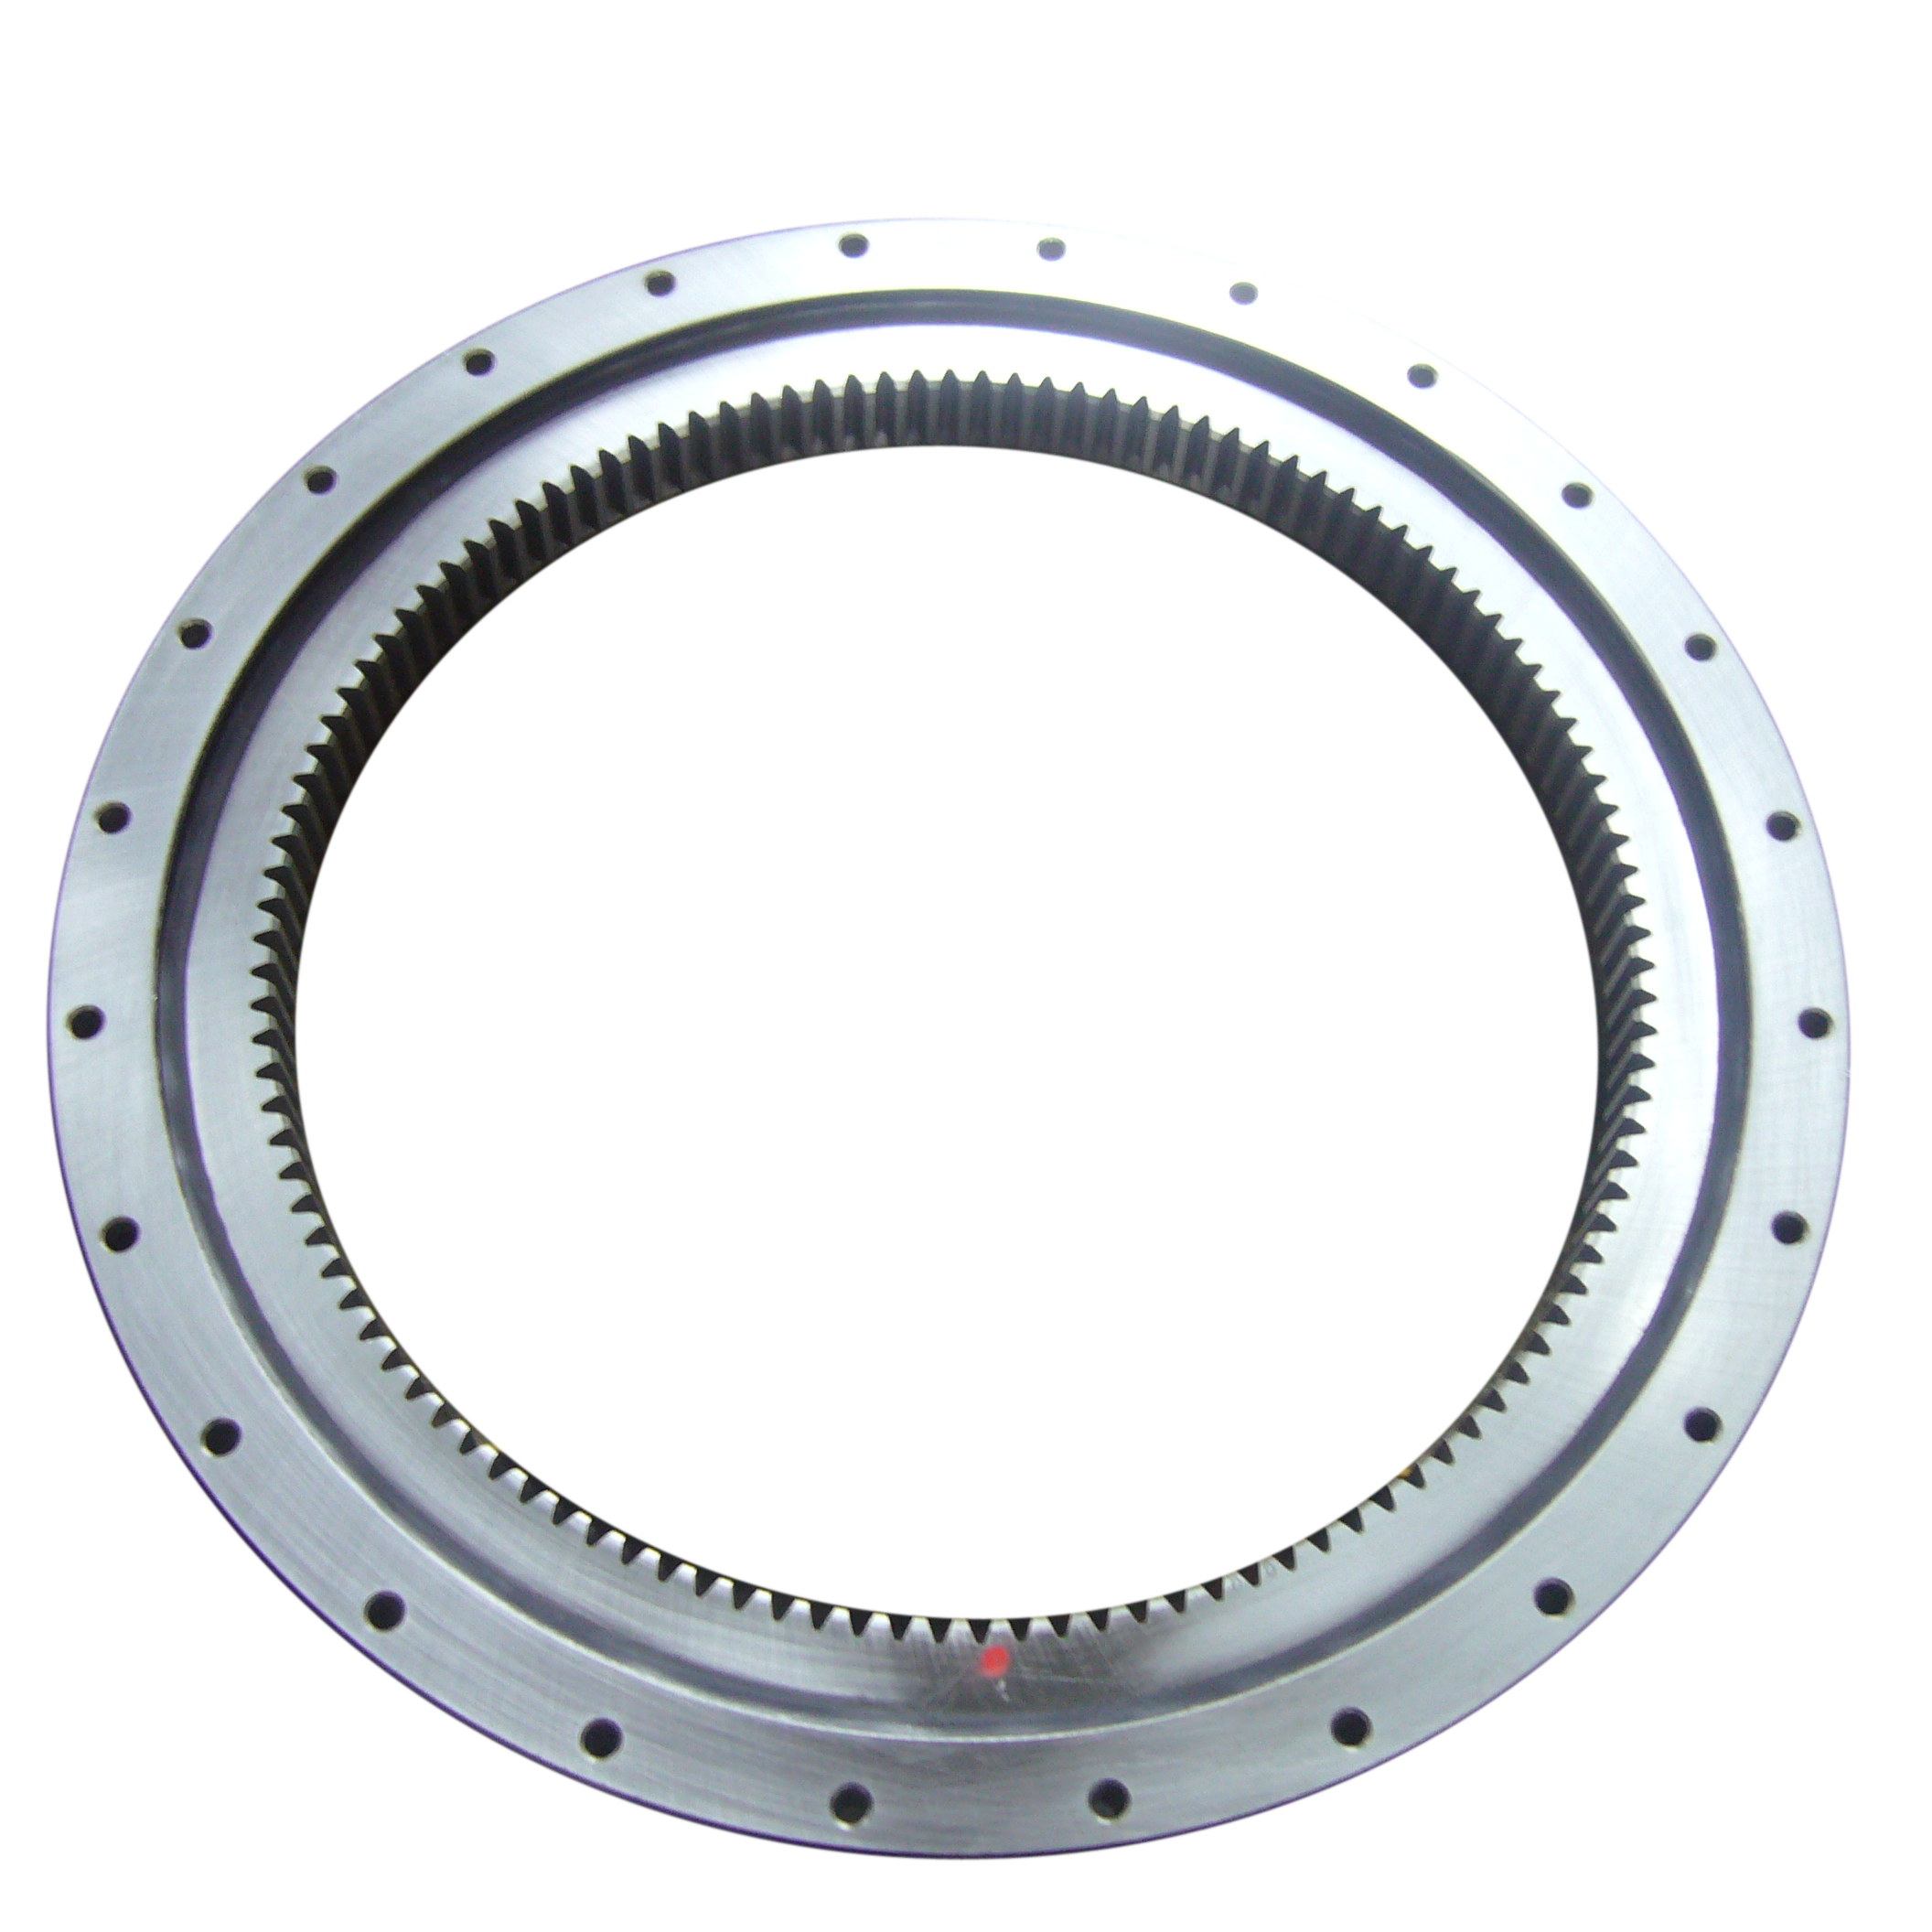 Ball Bearing Slewing Ring For Satellite Track Manufacturers, Ball Bearing Slewing Ring For Satellite Track Factory, Supply Ball Bearing Slewing Ring For Satellite Track